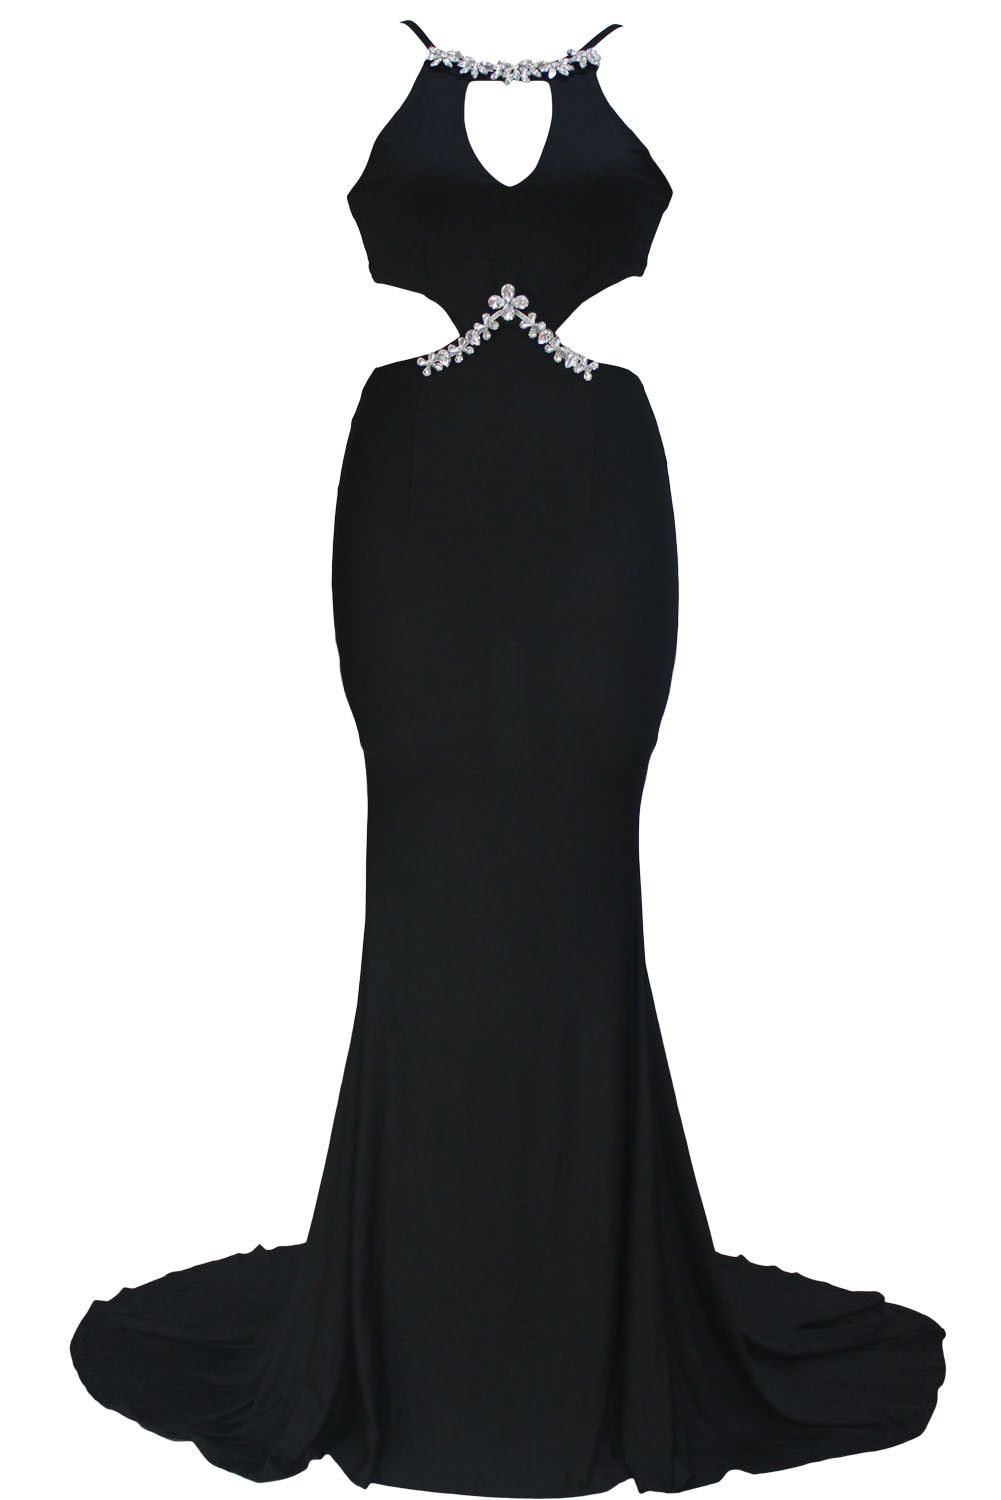 Diamond embellished sexy cutout black mermaid dress products